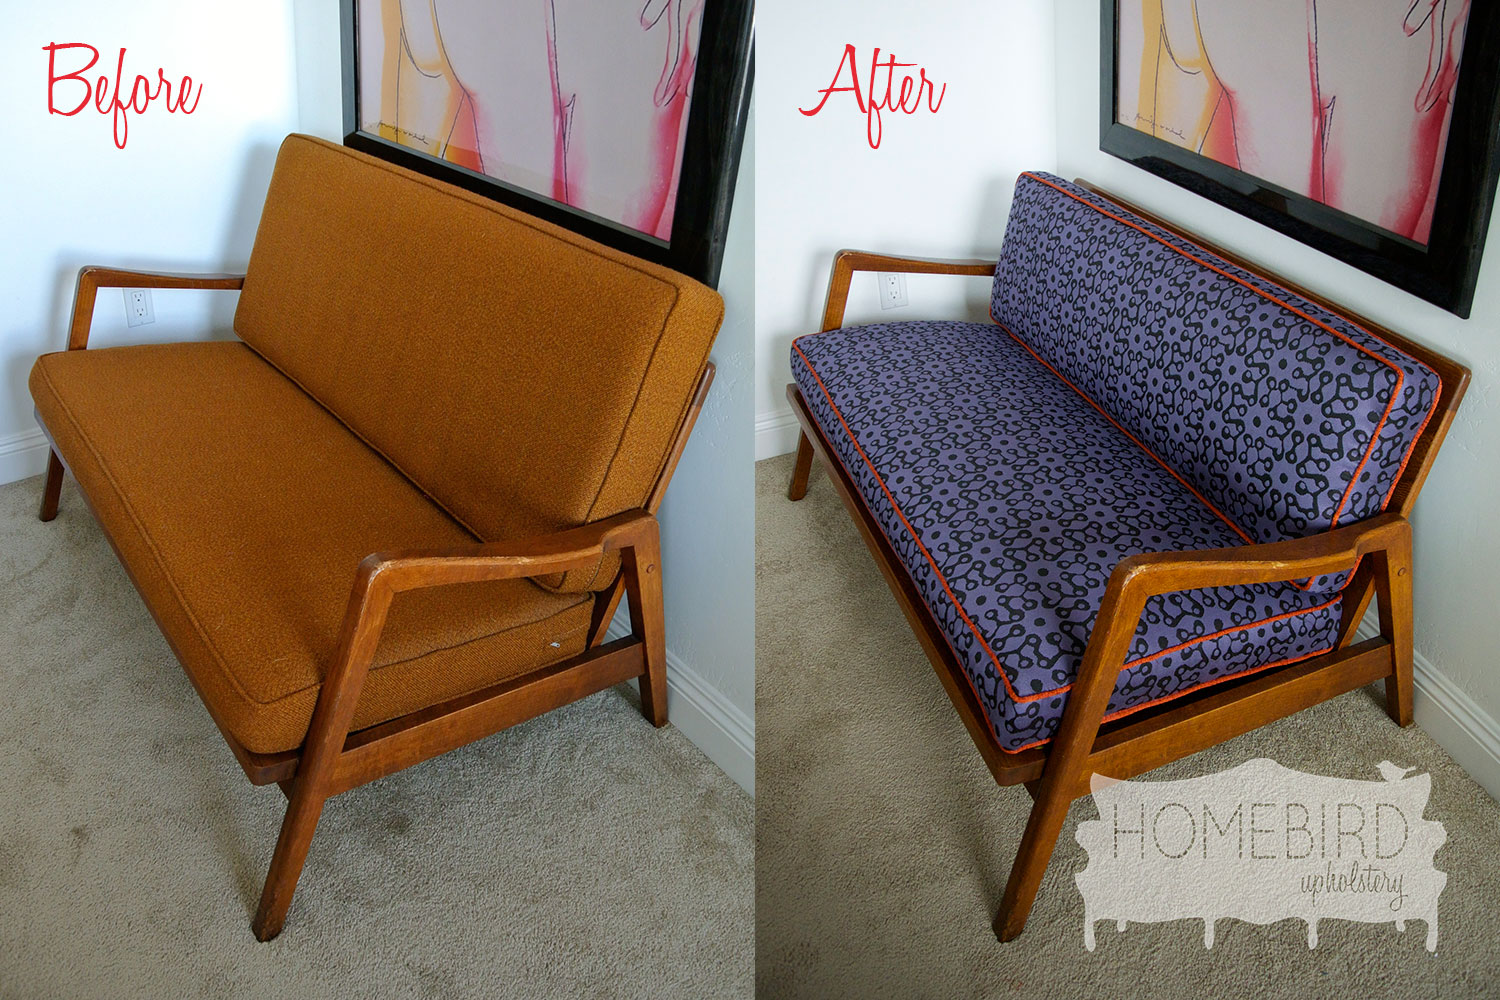 Before & After: An Imperfect Loveseat